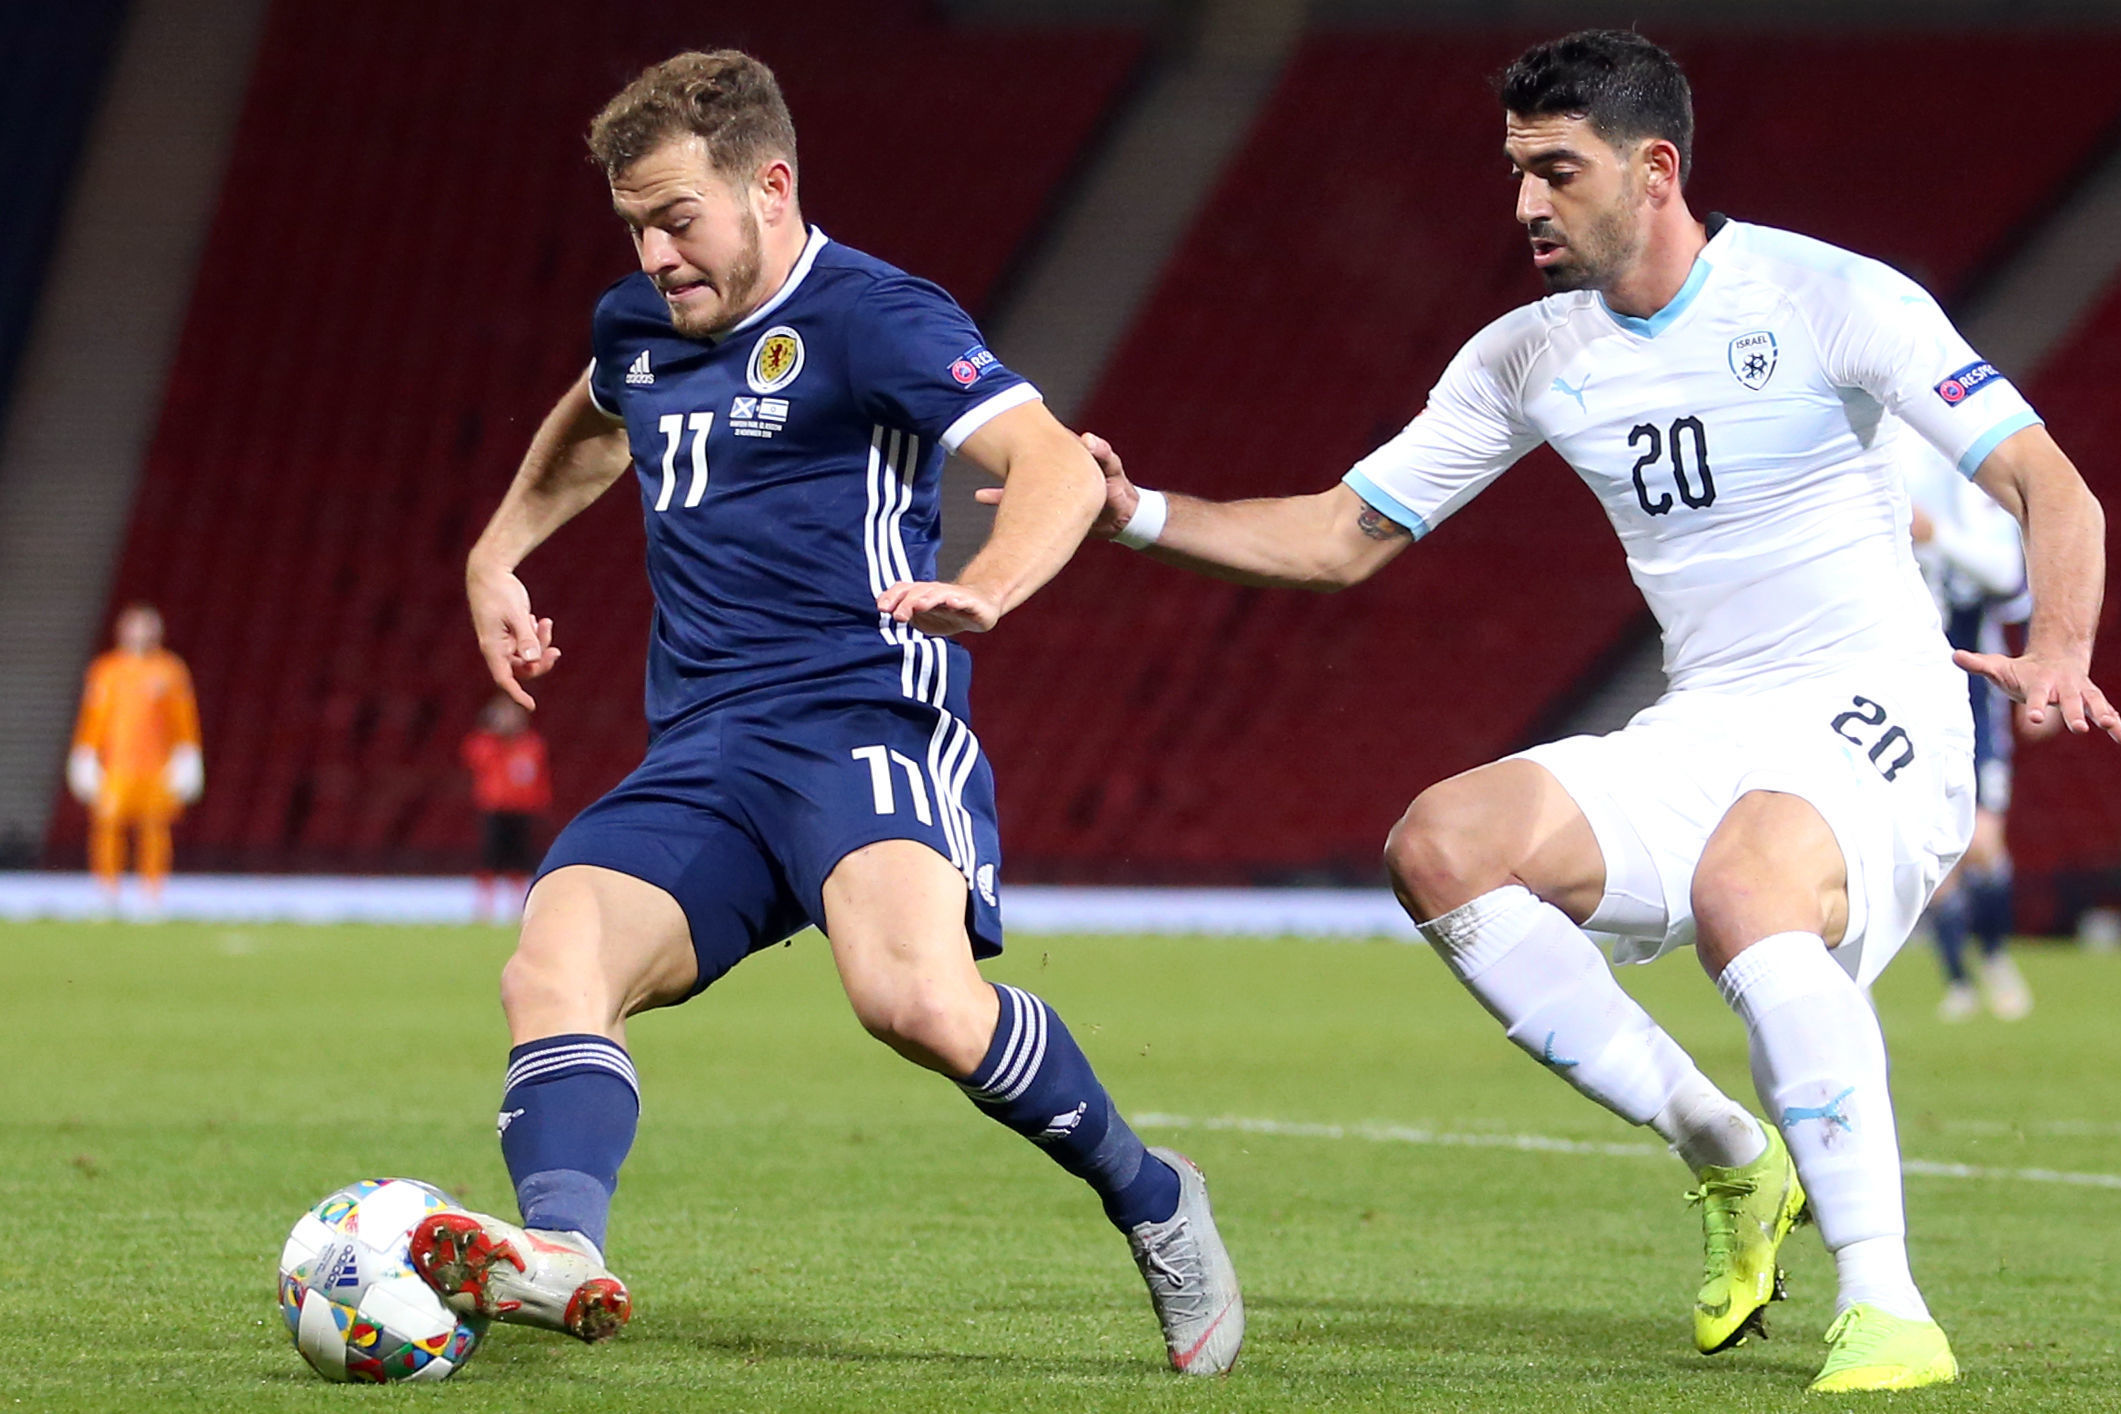 AFC Bournemouth winger Ryan Fraser out of Scotland squad due to knee injury